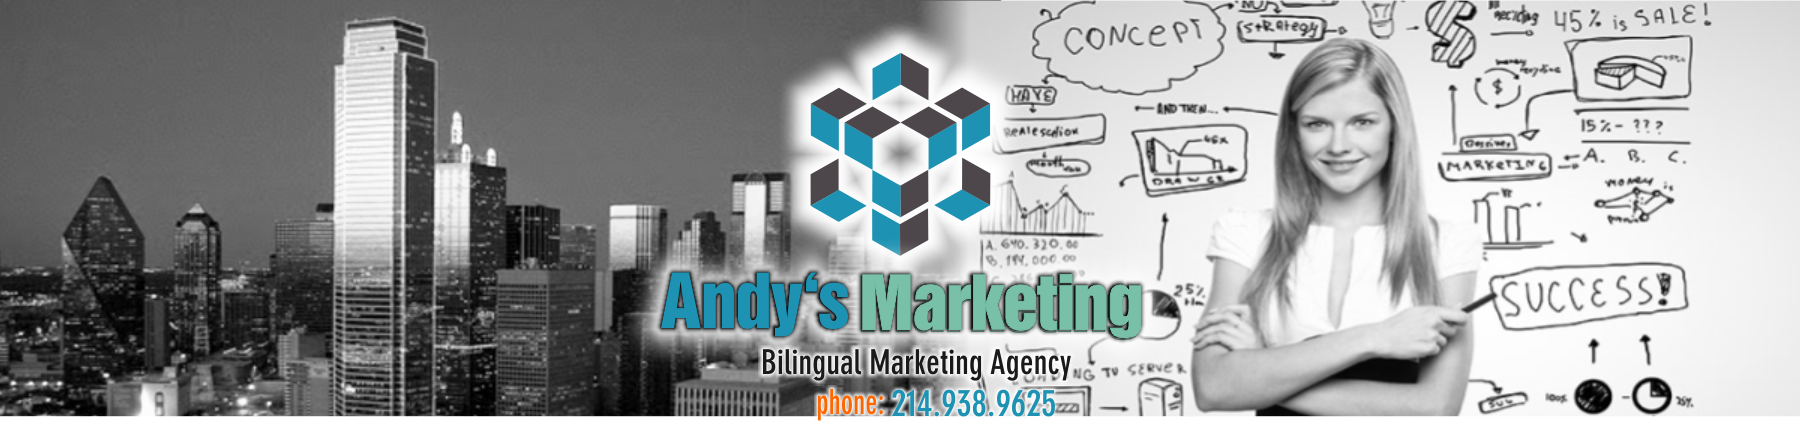 Multicultural Hispanic Bilingual Marketing Agency Tampa, Dallas, New York, Miami, Houston 813.421.2030 or 214.938.9625